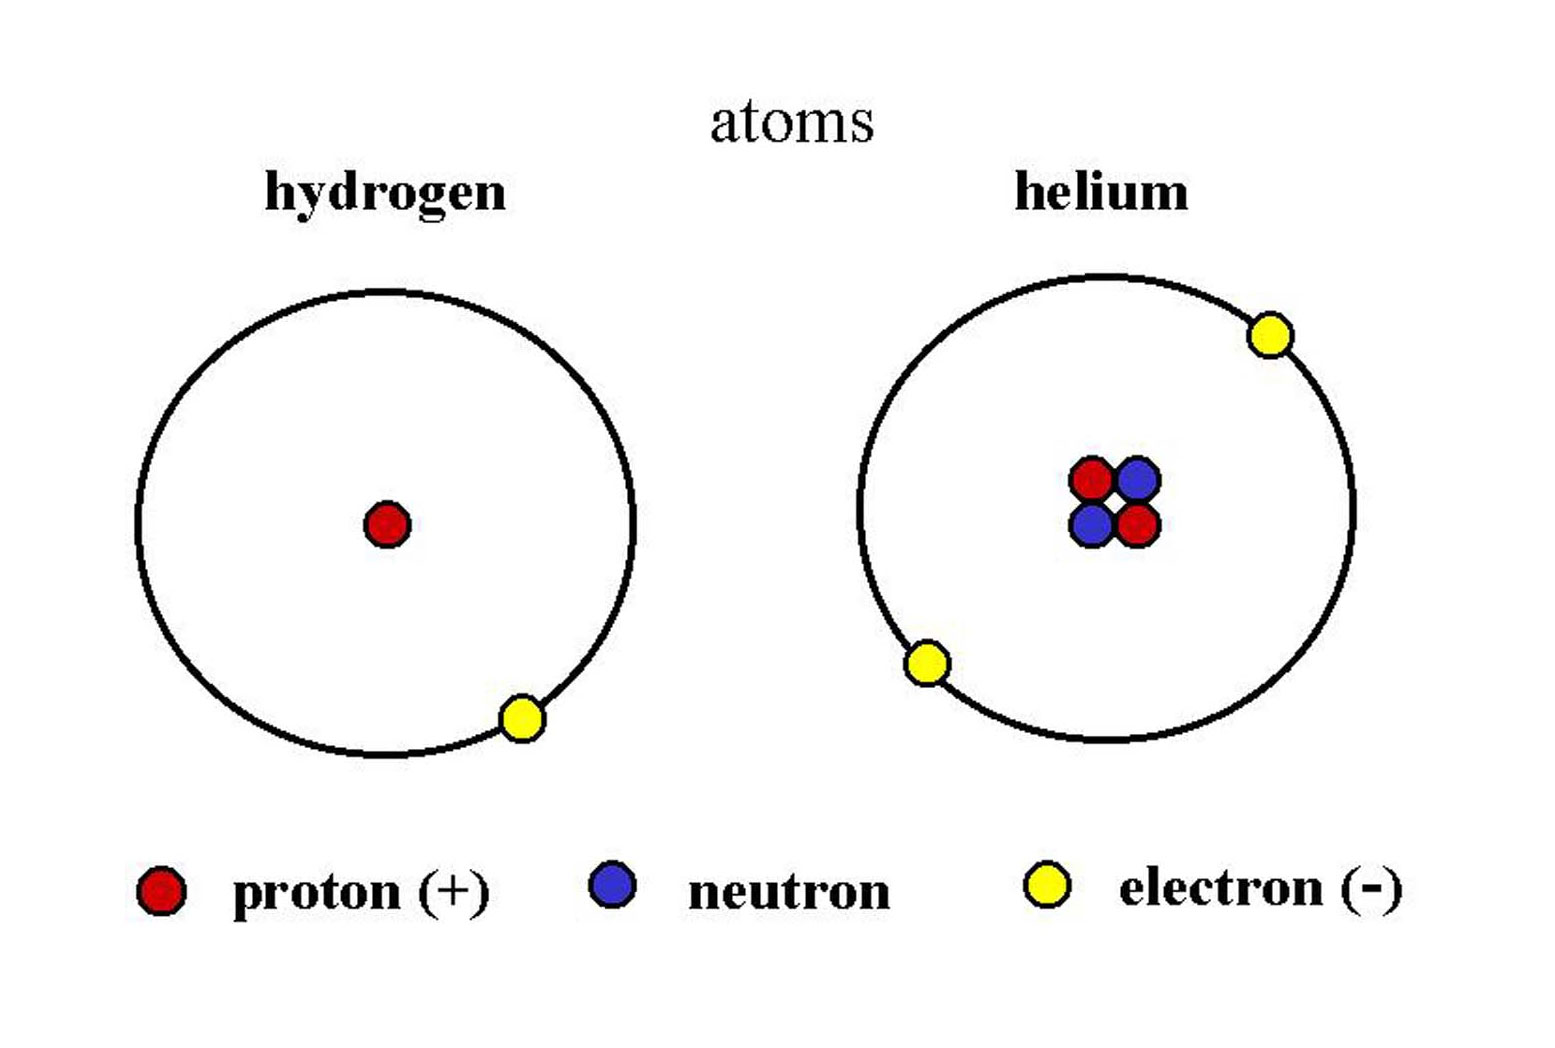 hydrogen and helium Number of hydrogen atoms ----- = 125 number of helium atoms in our own corner of the milky way, this ratio is currently about 10 there has evidently been quite a bit of nuclear processing of hydrogen into helium by previous generations of stars in our galaxy.